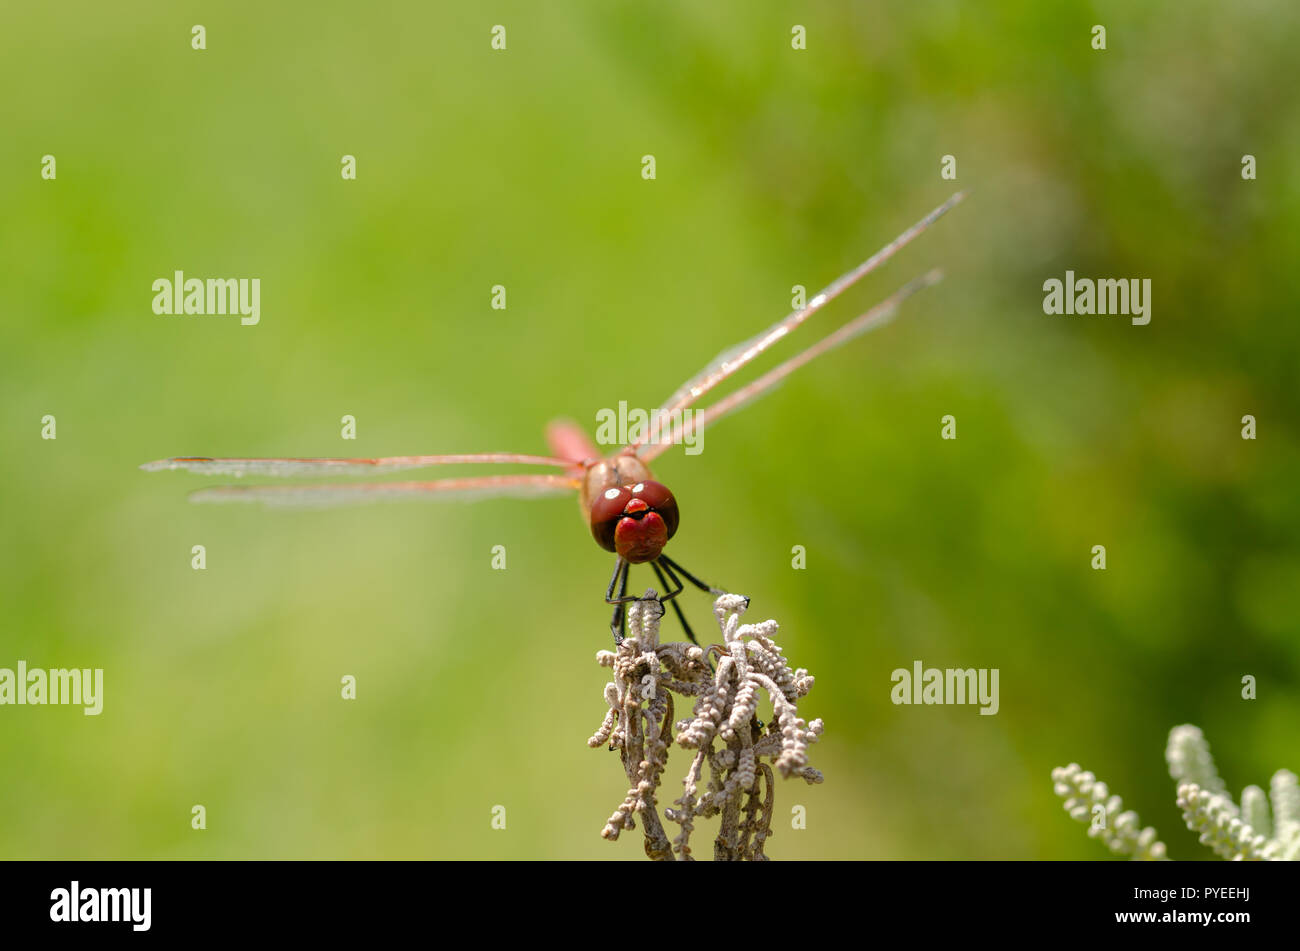 Red dragonfly rests on leaf, green background. Stock Photo